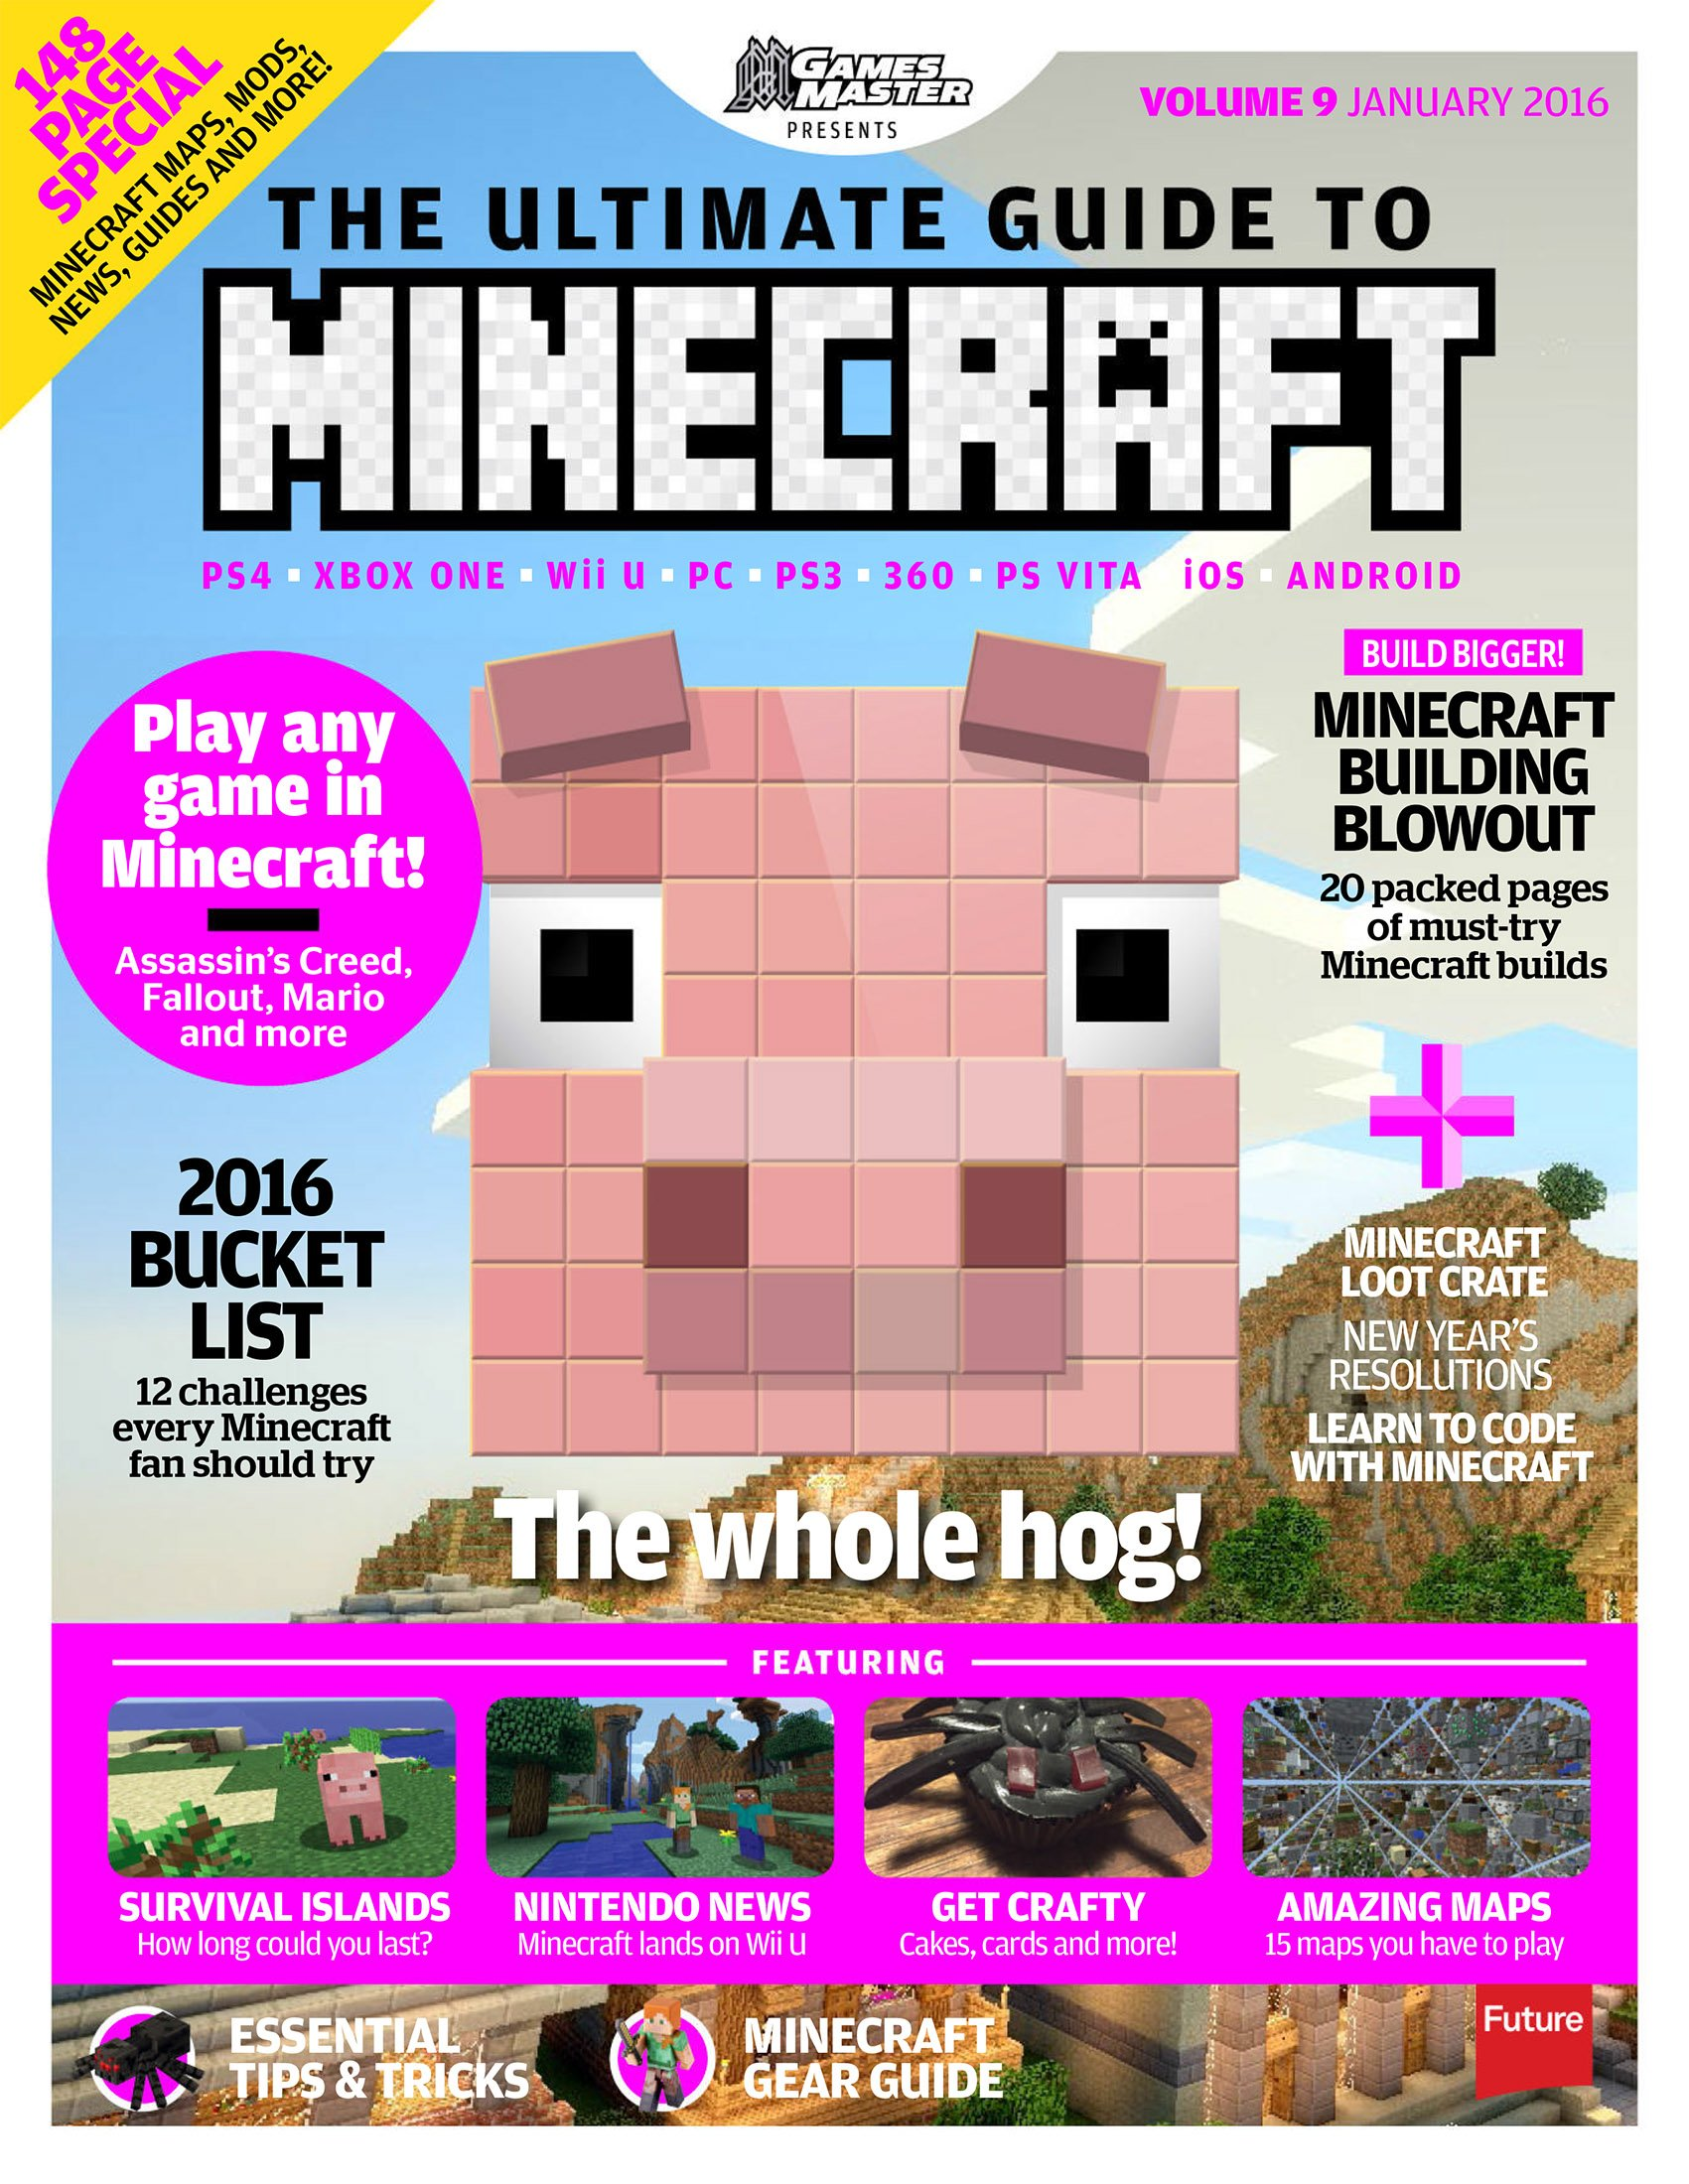 GamesMaster Presents: The Ultimate Guide to Minecraft Vol.09 (January 2016)